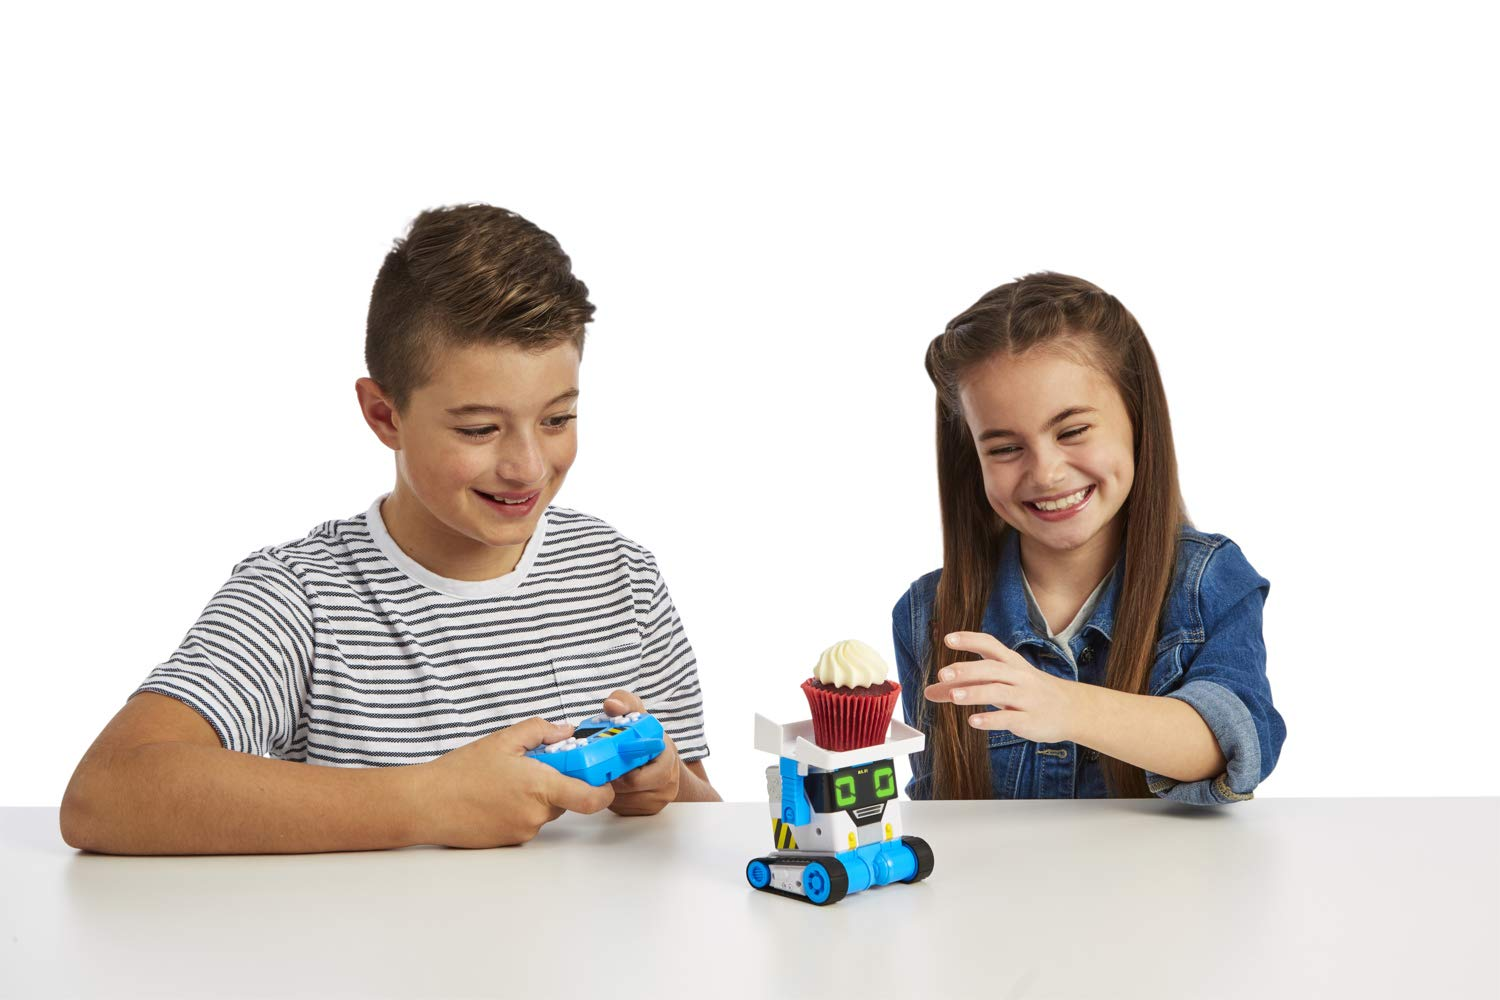 The MiBro robot allows kids to come up with various play scenarios.